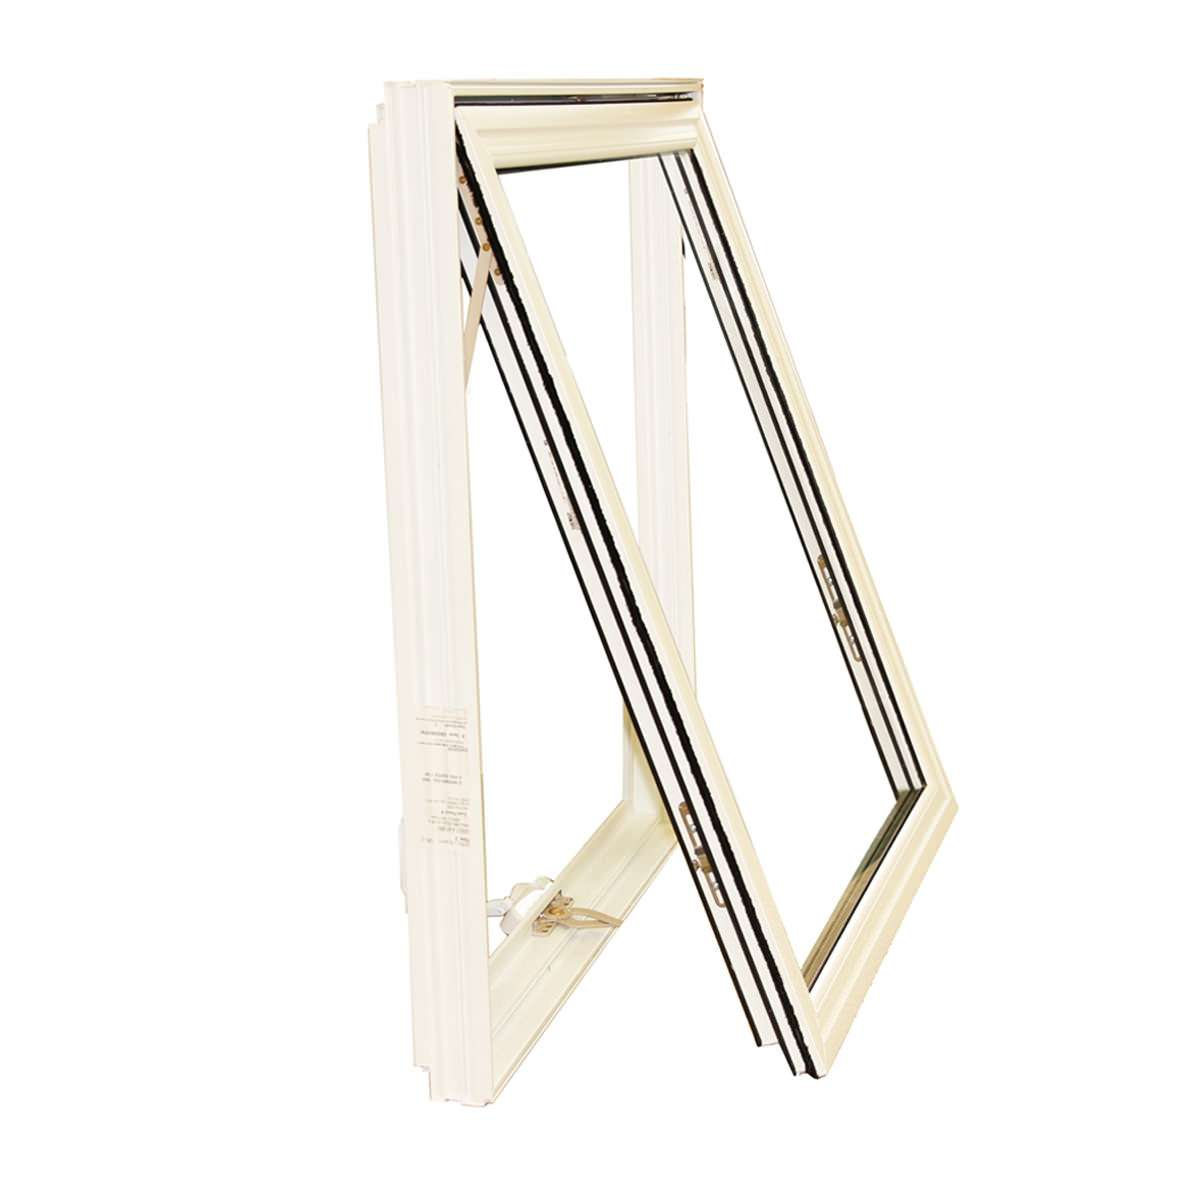 Side view of an open white awning window